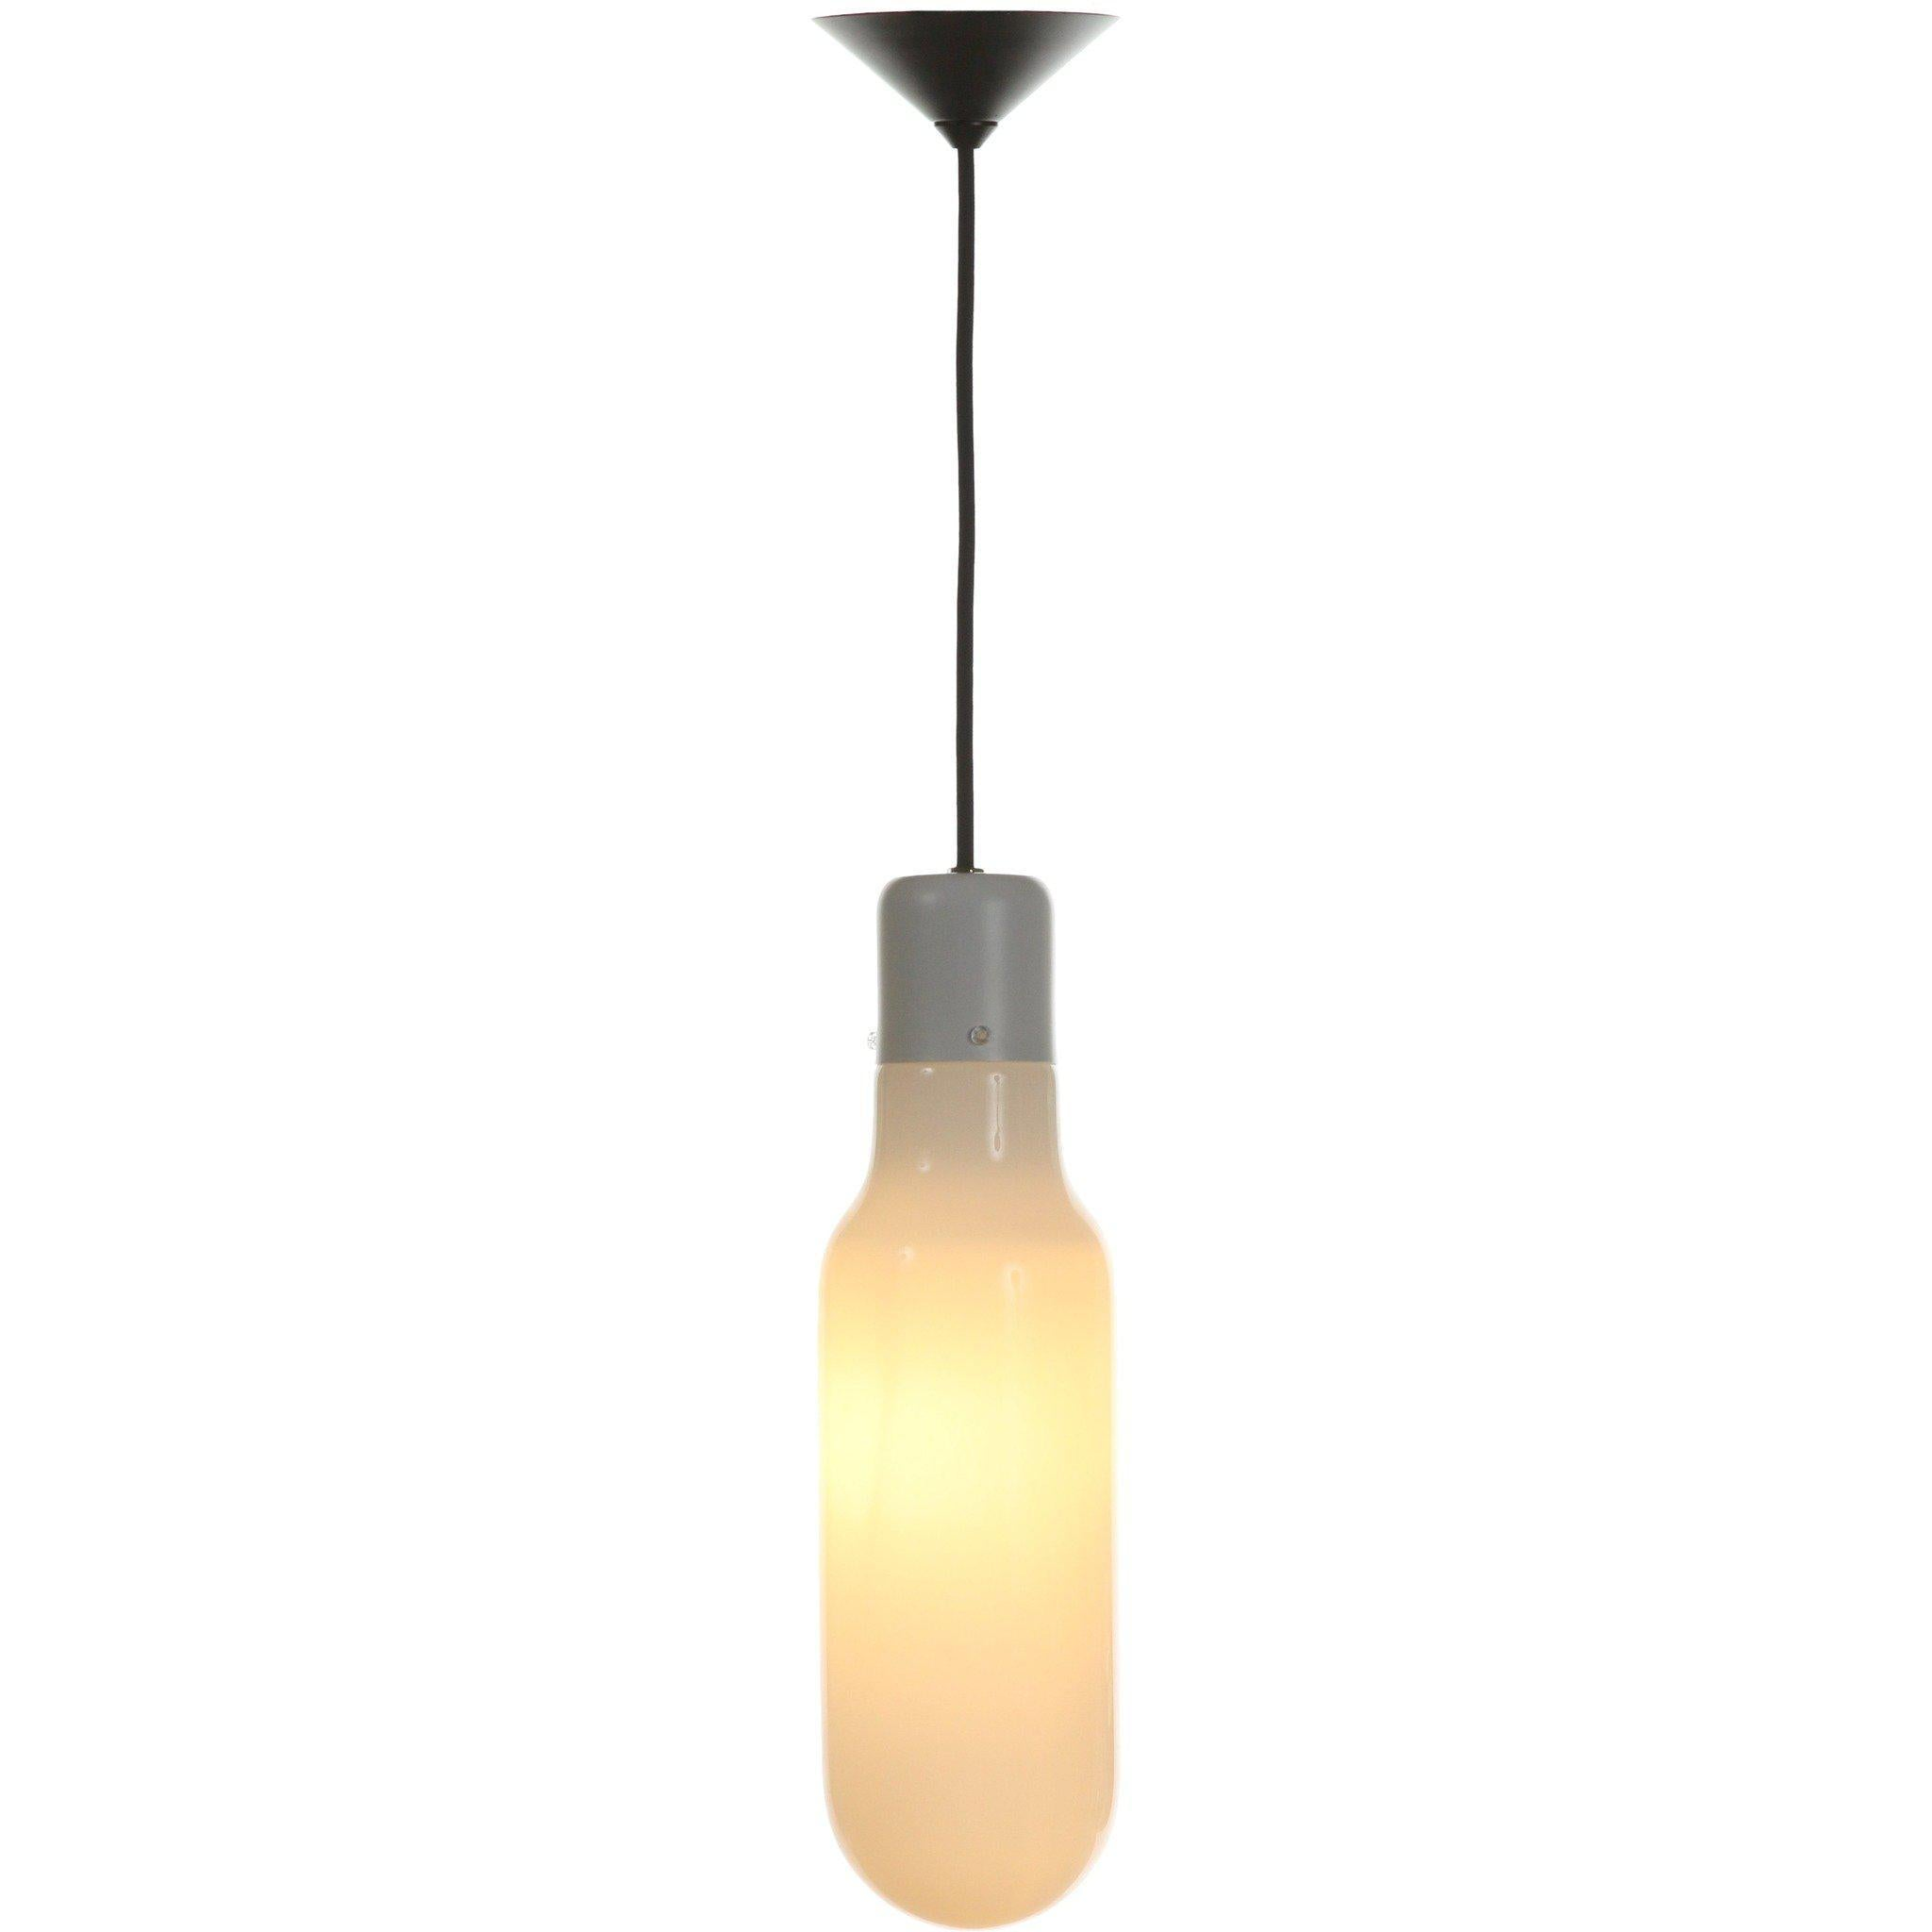 [LM574PWHT] The Ardee Pendant Lamp SALE